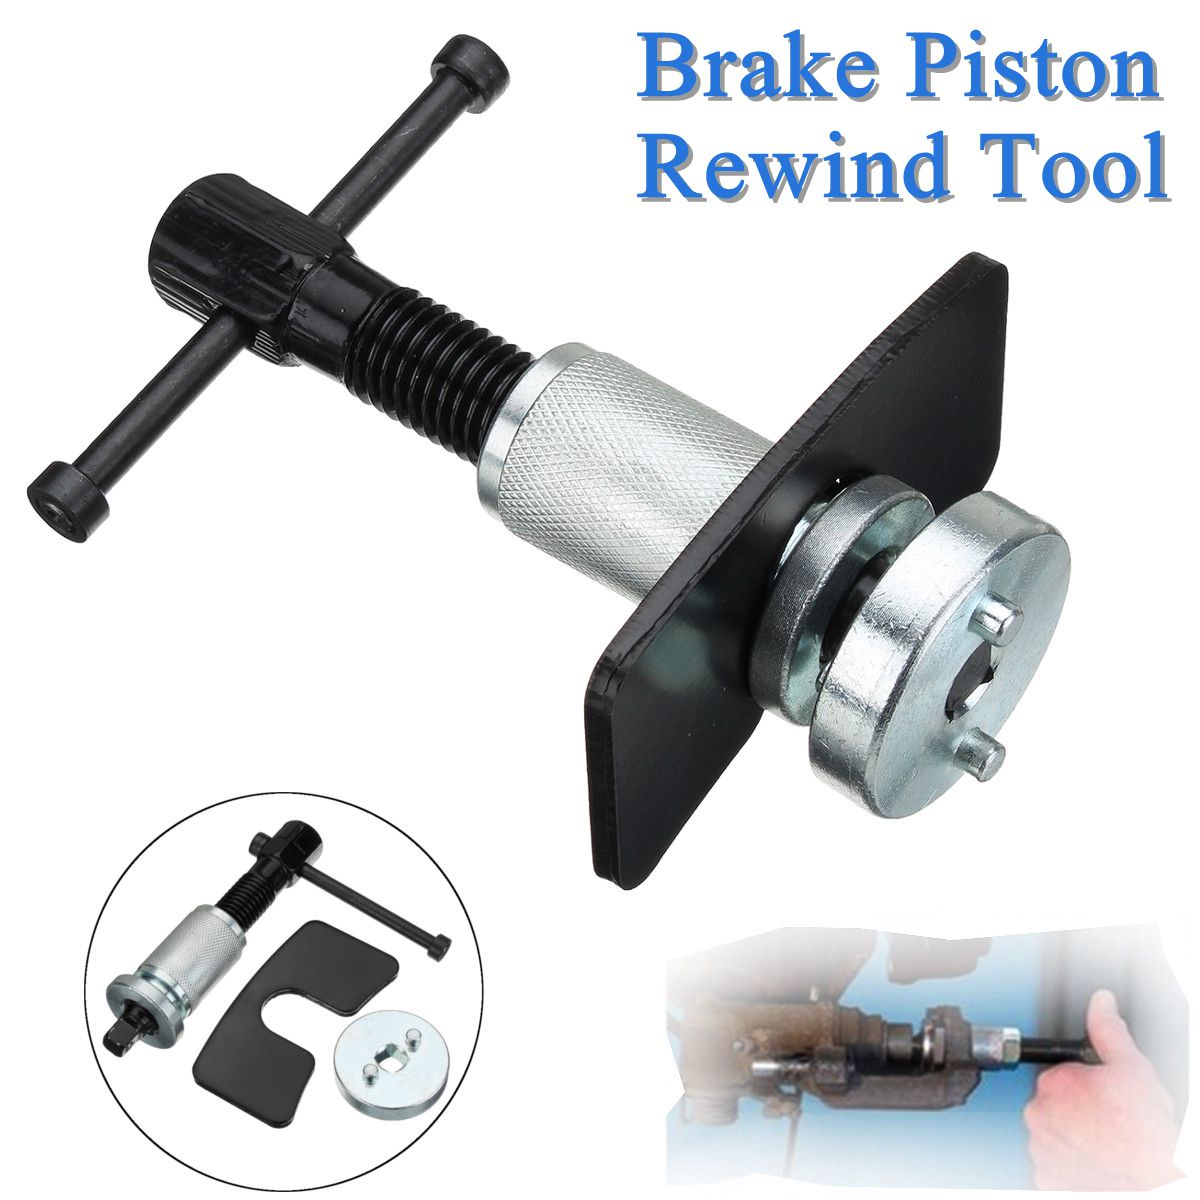 Rear Brake Piston Rewind Tool Disc Caliper Piston Wind Back Kit